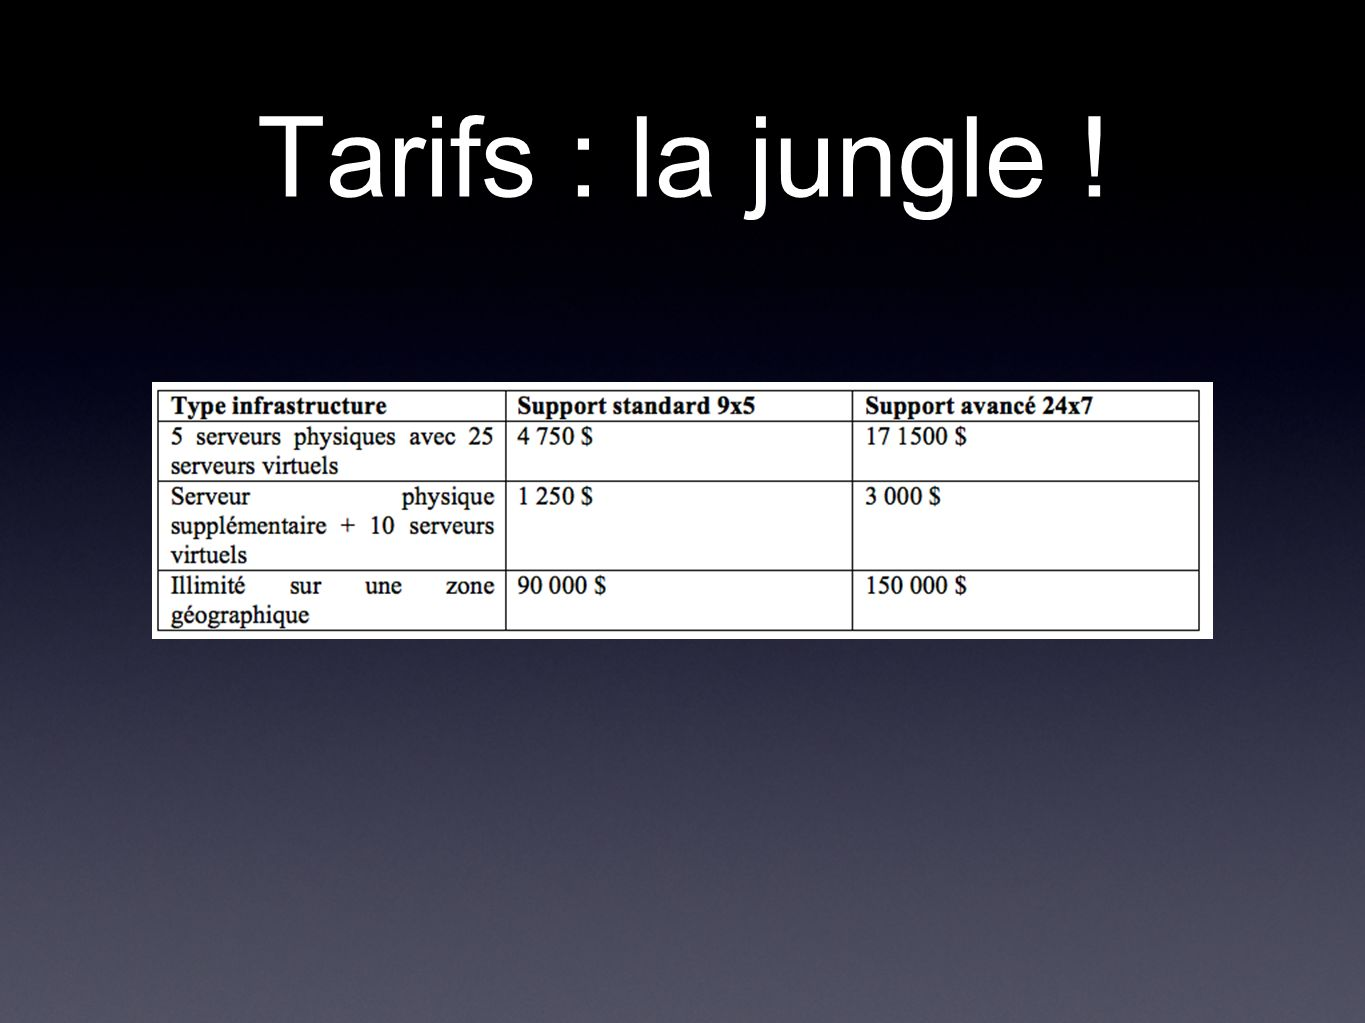 Tarifs : la jungle !